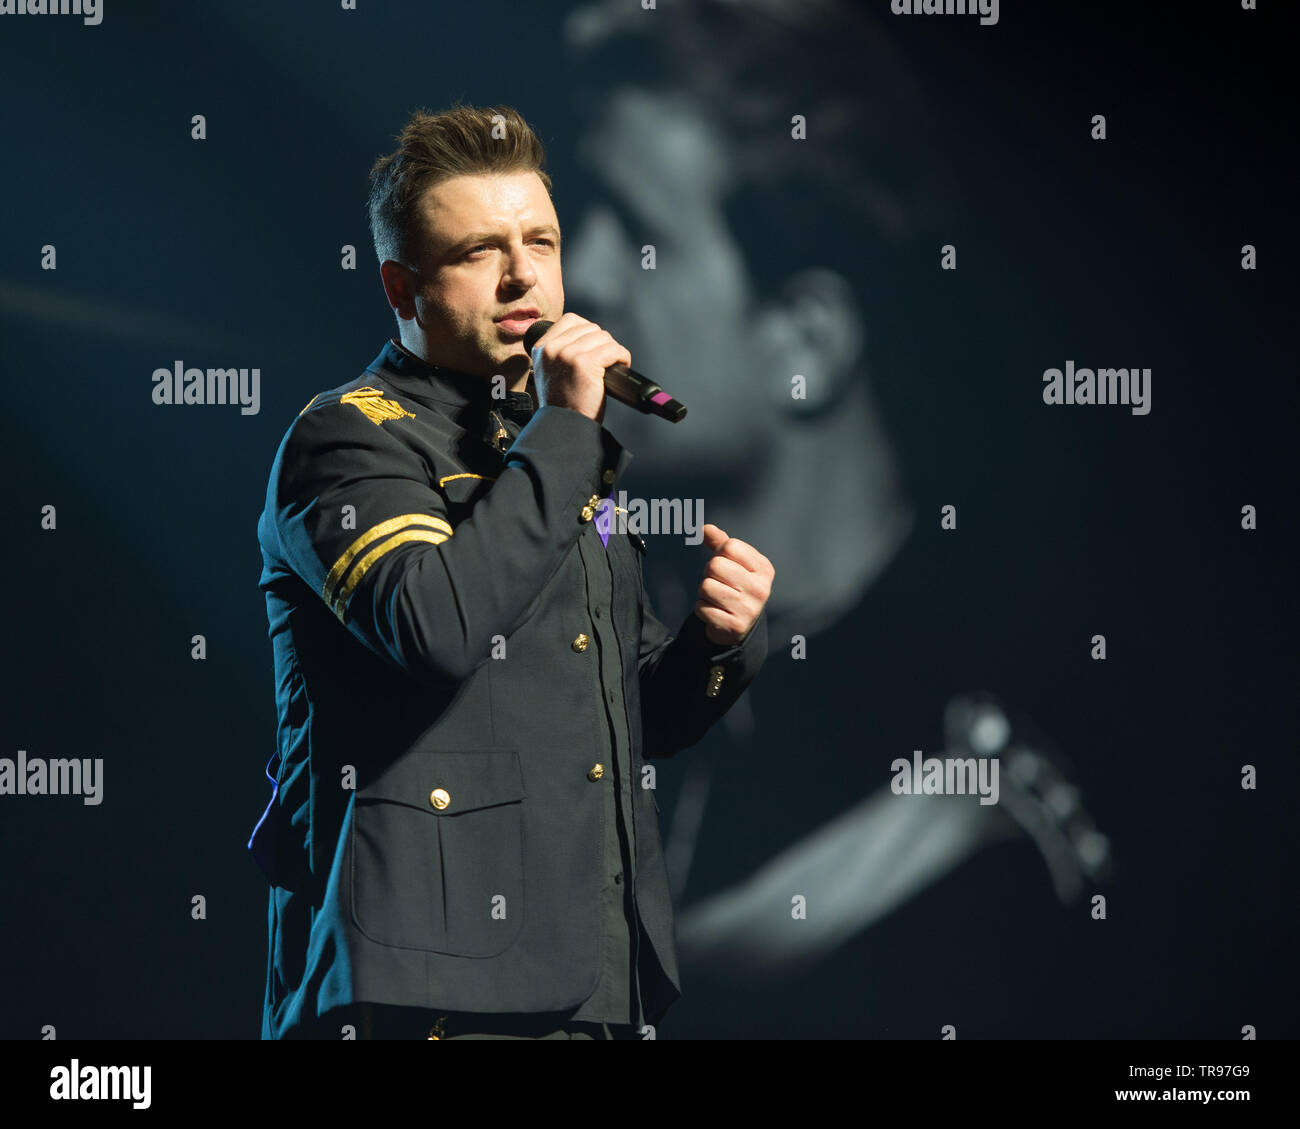 Glasgow, UK  28 May 2019  World renown boy band, Westlife